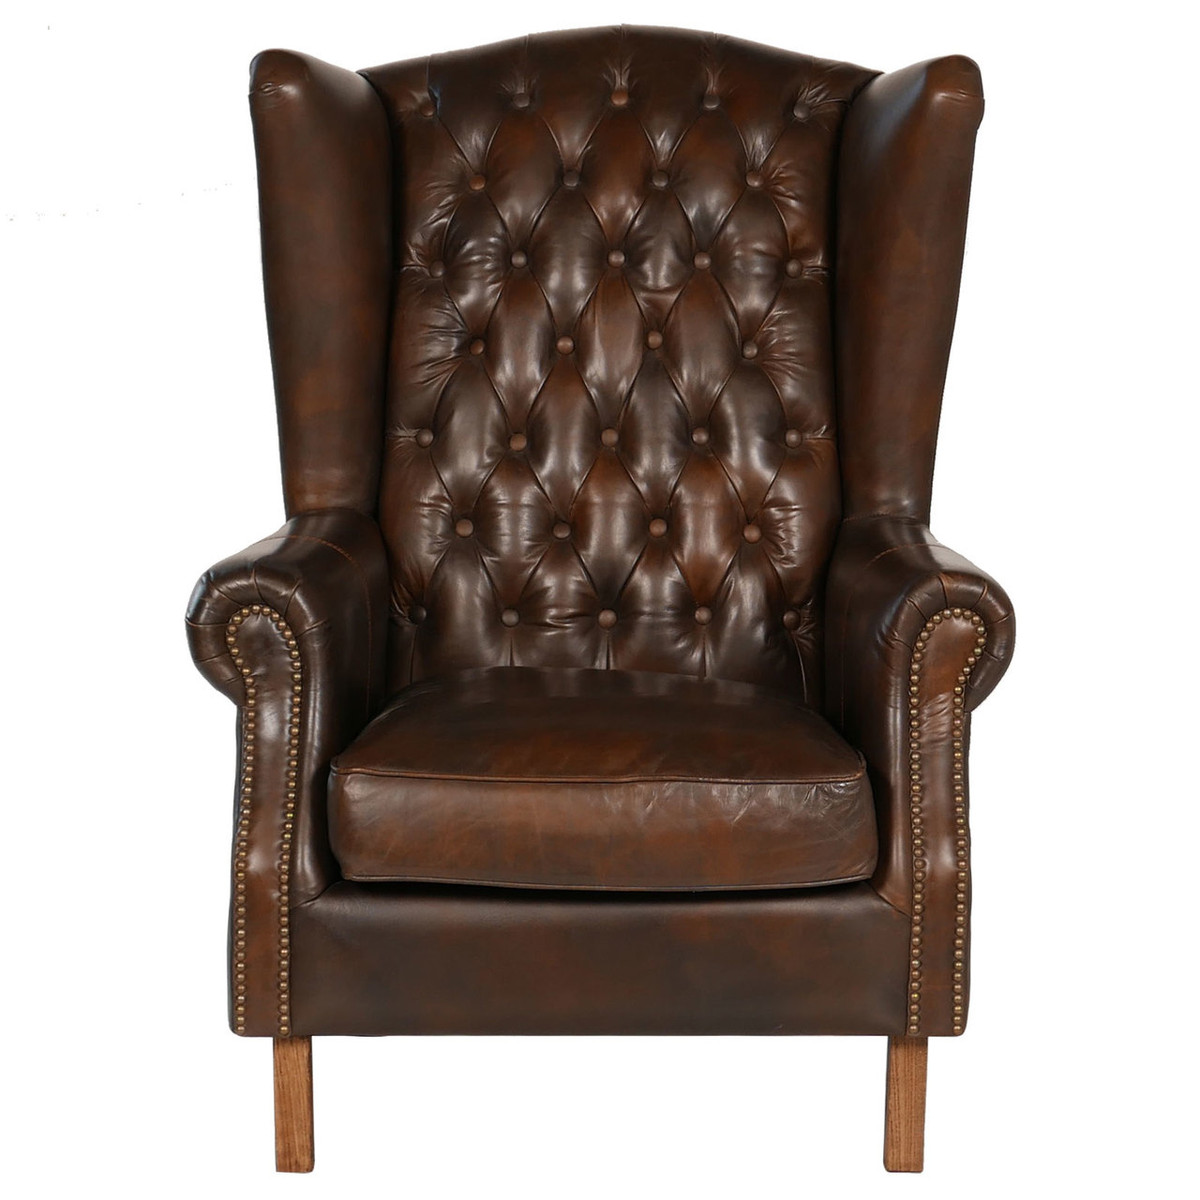 Old World Antique Leather Wing Chair